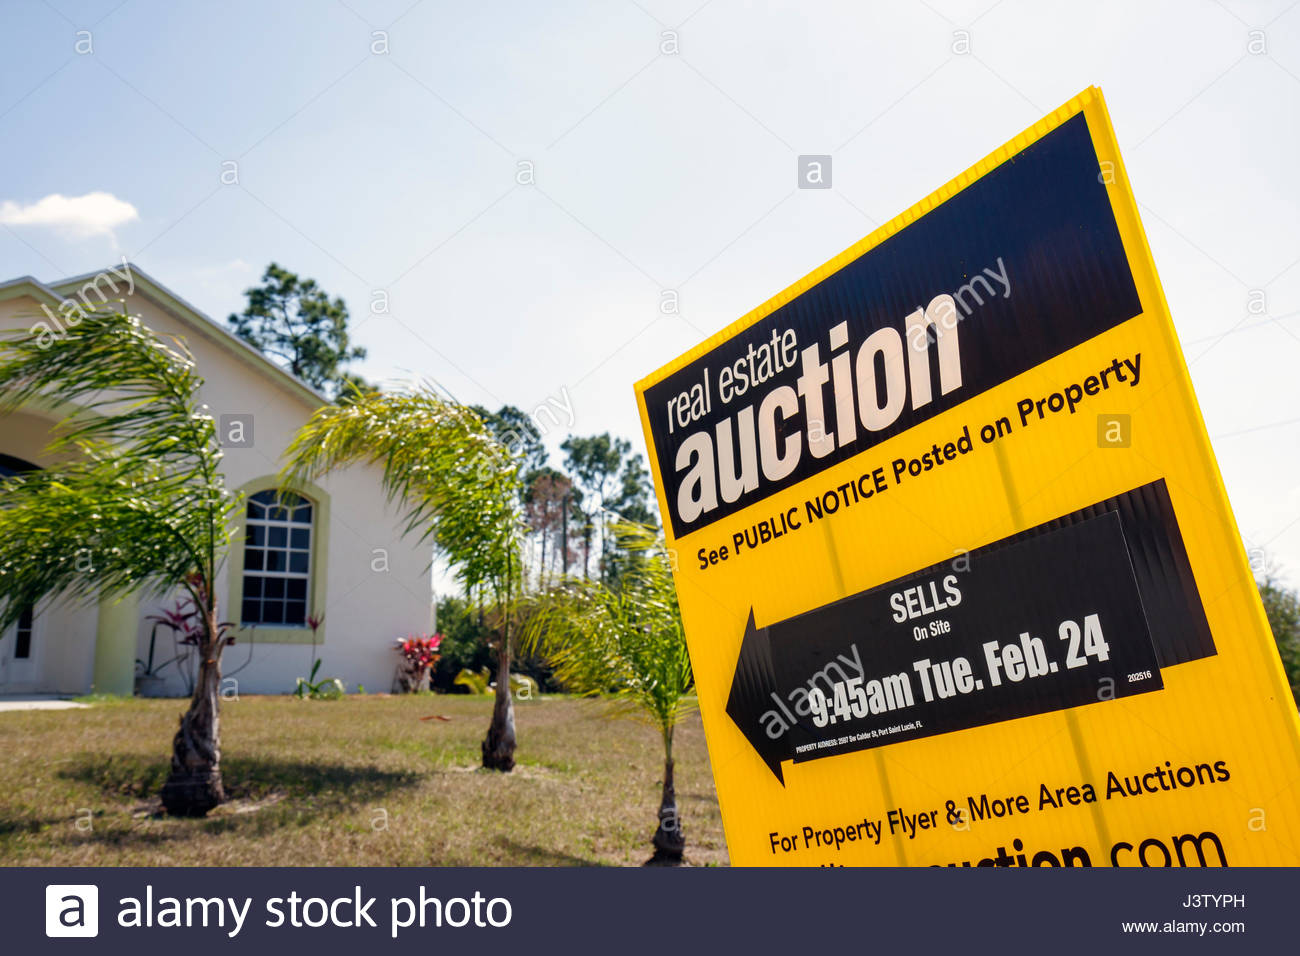 Port St Lucie Florida Saint House Single Family Home New Stock